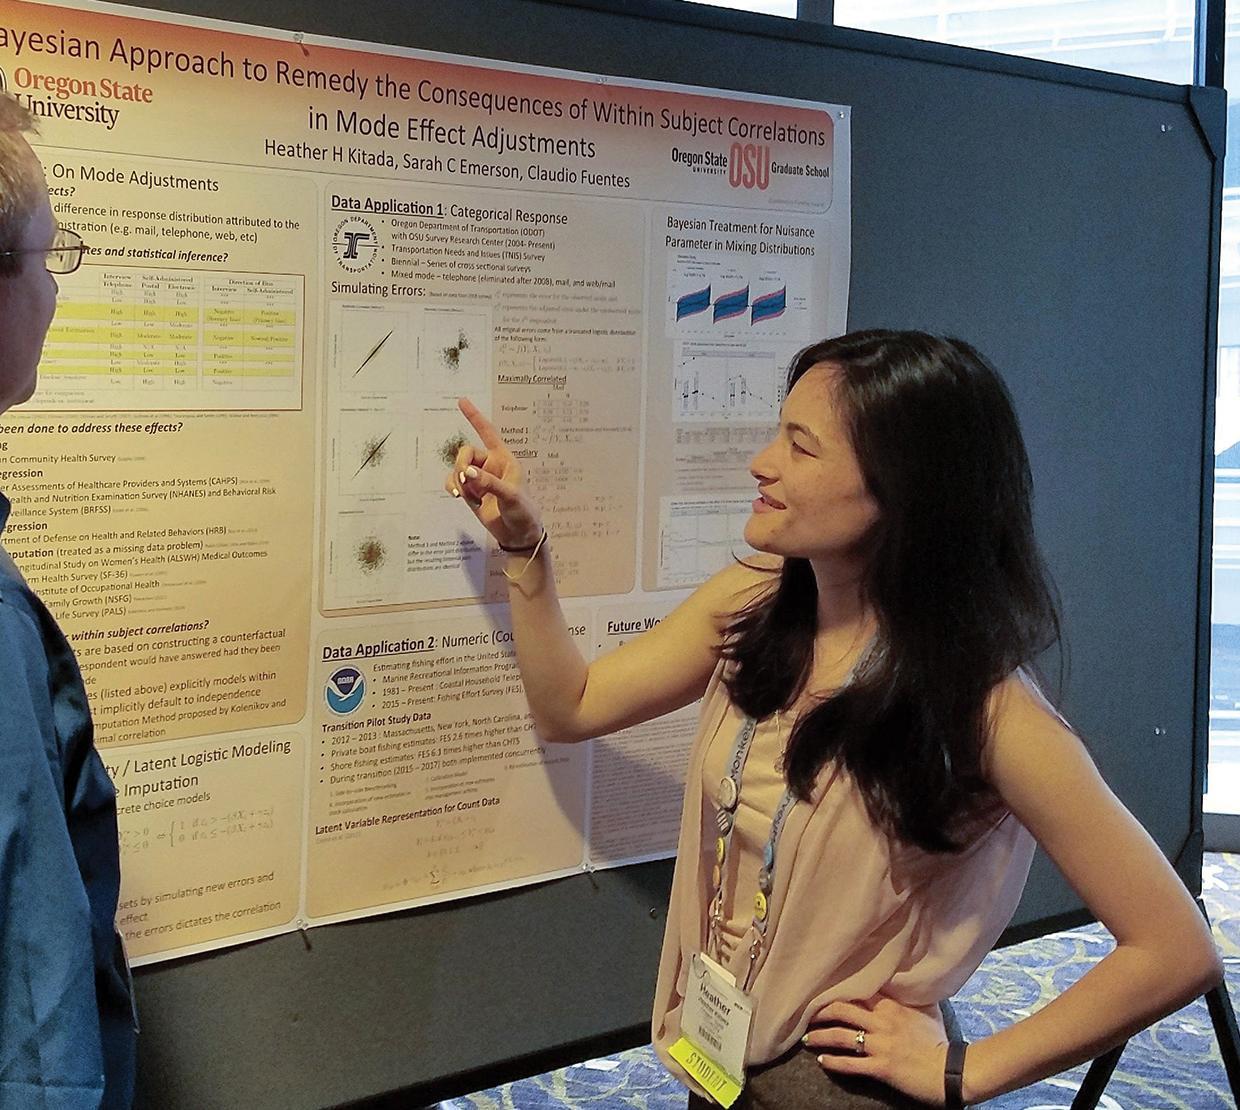 Heather H. Kitada talking about her research poster